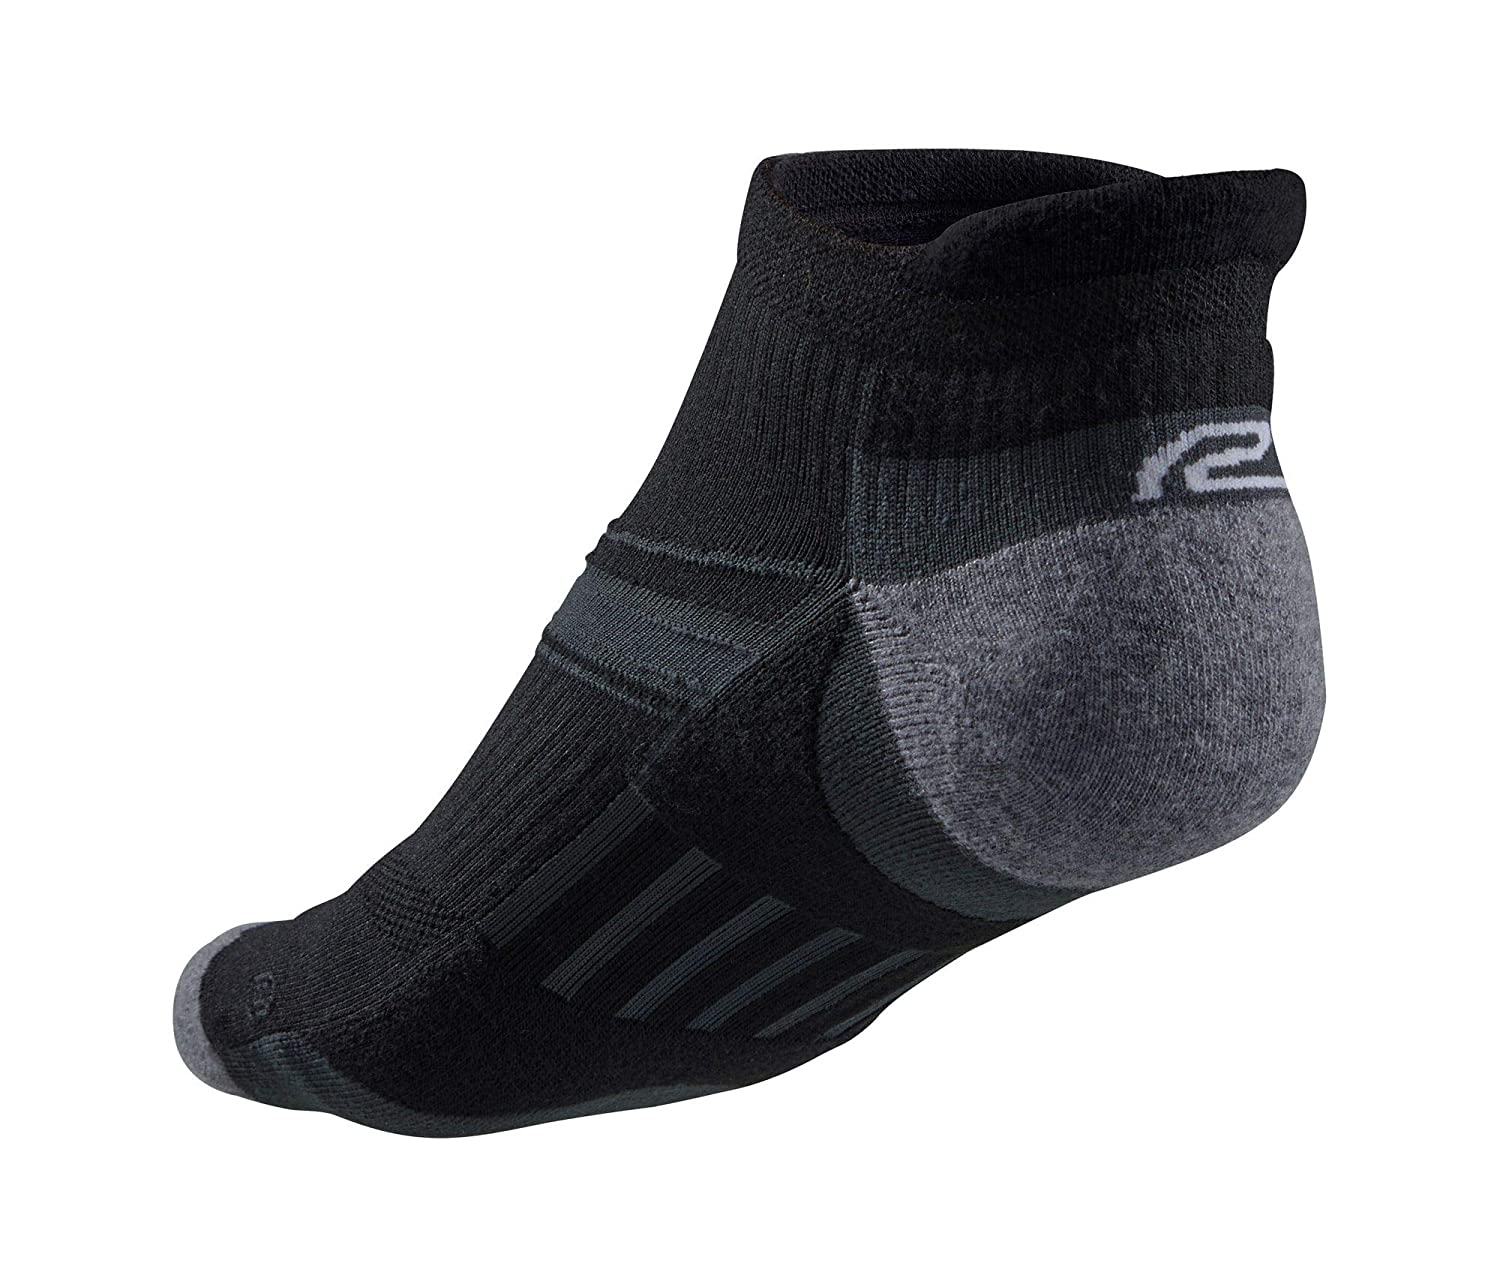 R-Gear Super Plush No Show Socks for Men and Women Extra Soft and Comfortable 3 Pack